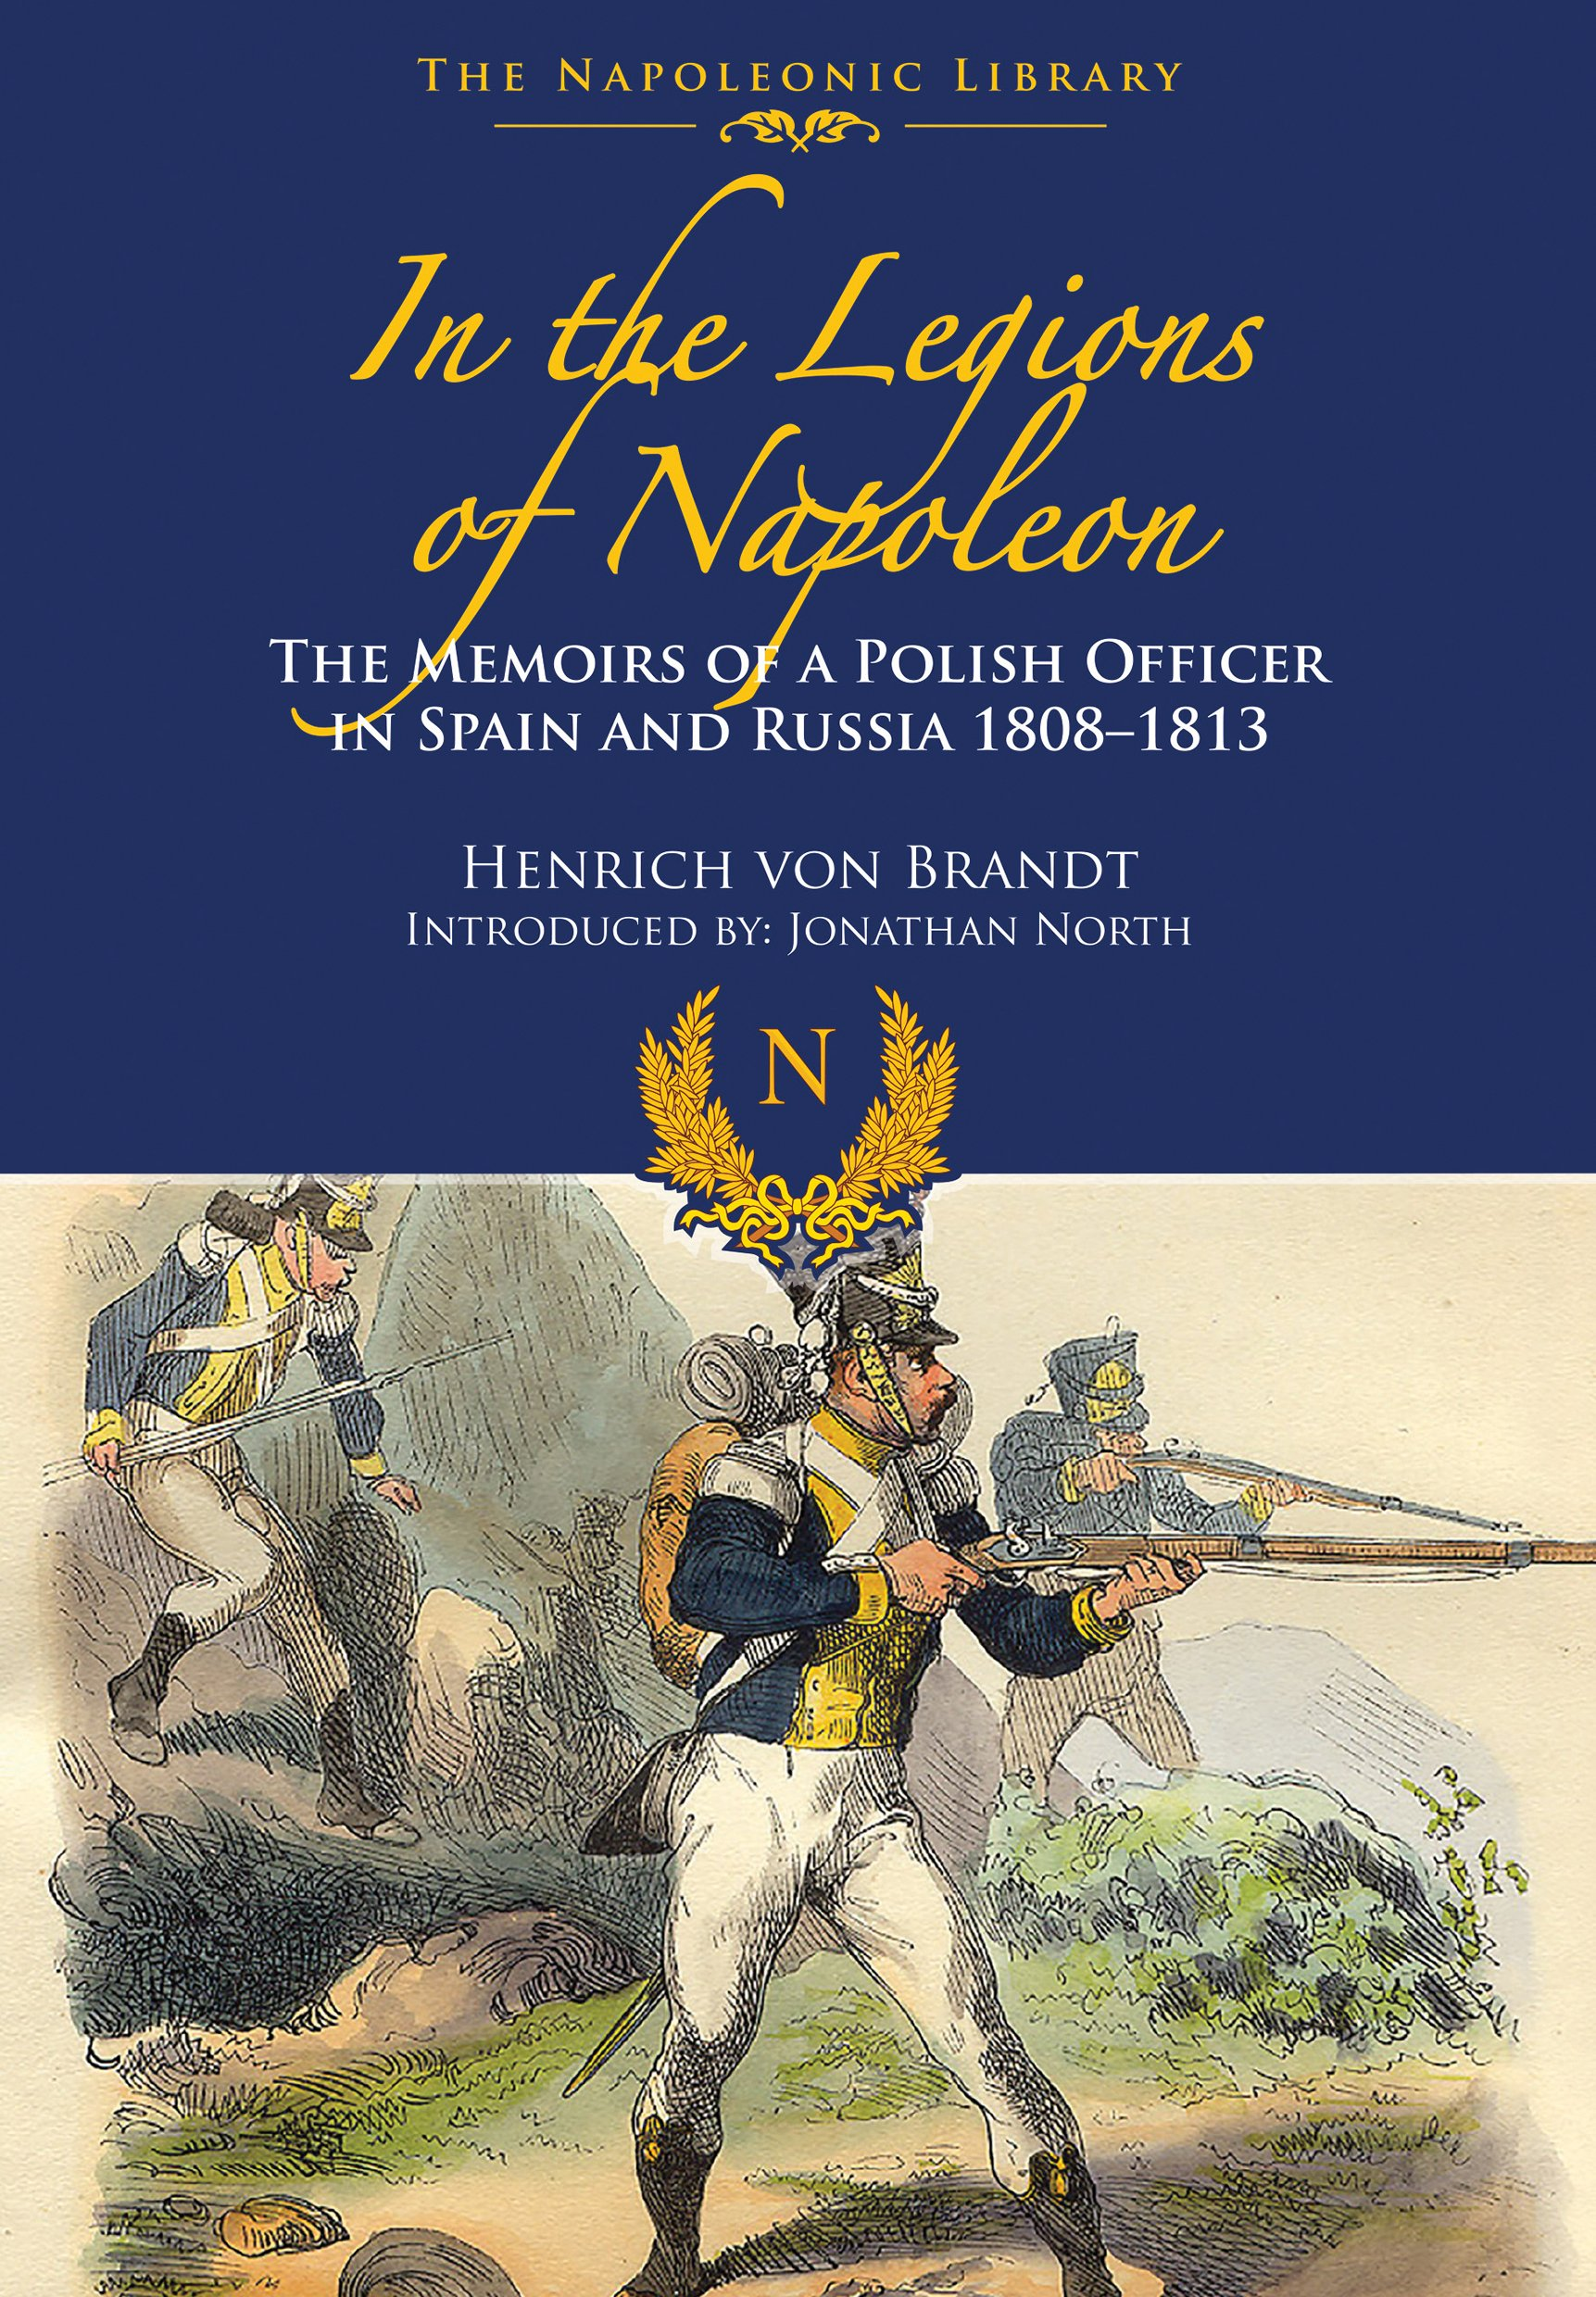 In the Legions of Napoleon: The Memoirs of a Polish Officer in Spain and Russian 1808-1813 Napoleonic Library: Amazon.es: Brandt, Henrich von: Libros en idiomas extranjeros